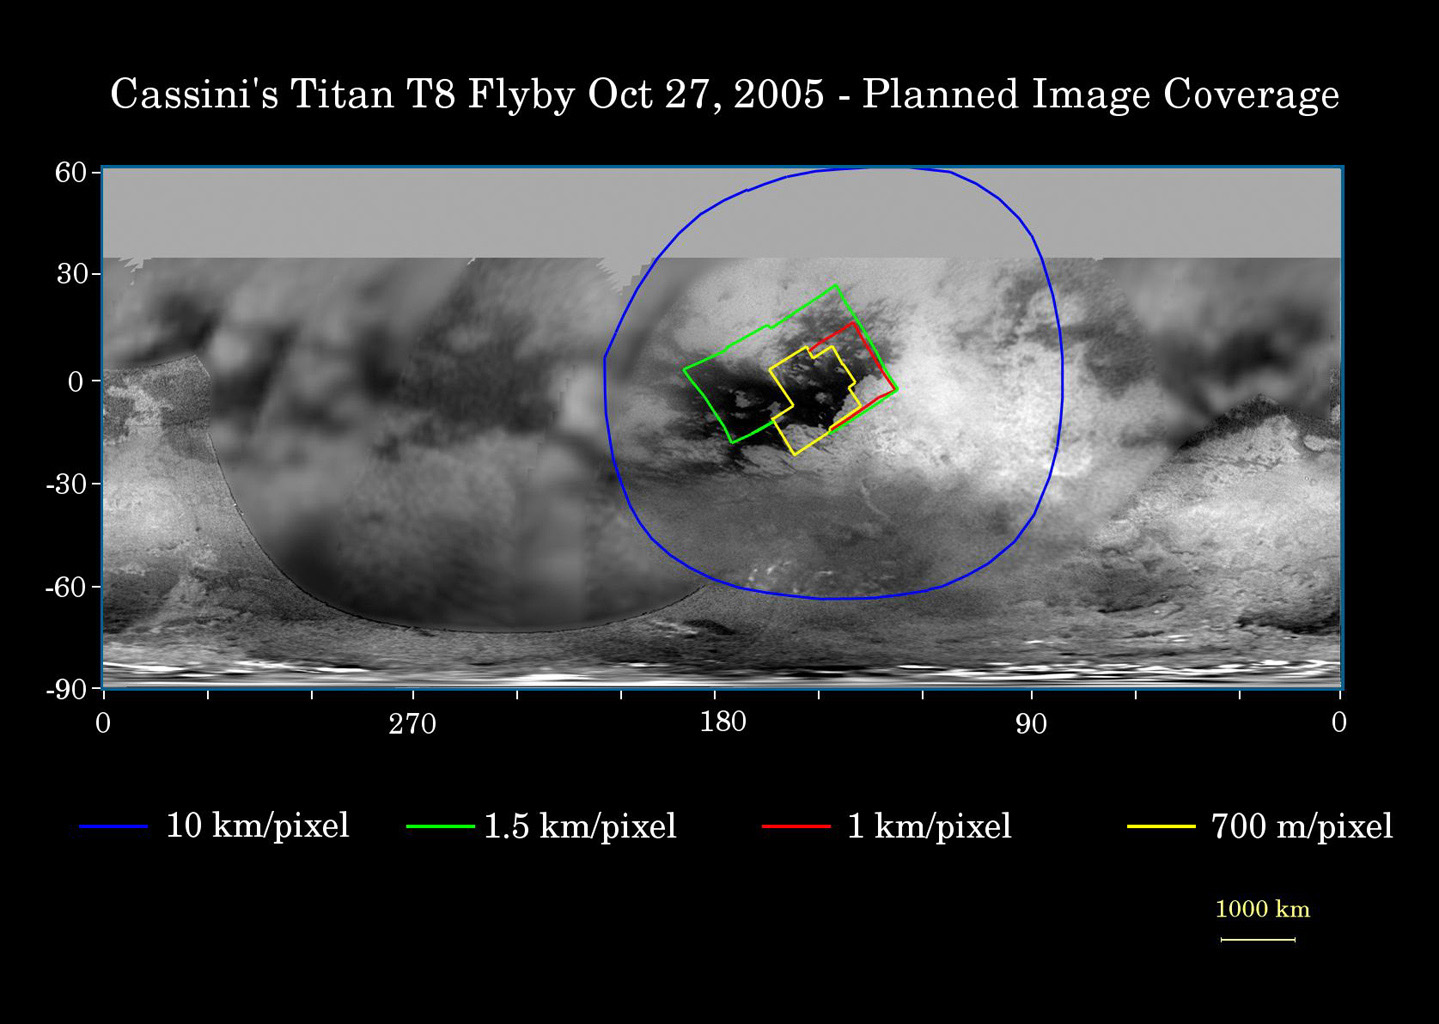 This map of Titan's surface illustrates the regions that will be viewed by the imaging cameras onboard NASA's Cassini spacecraft during the spacecraft's close flyby of Titan on Oct. 28, 2005.